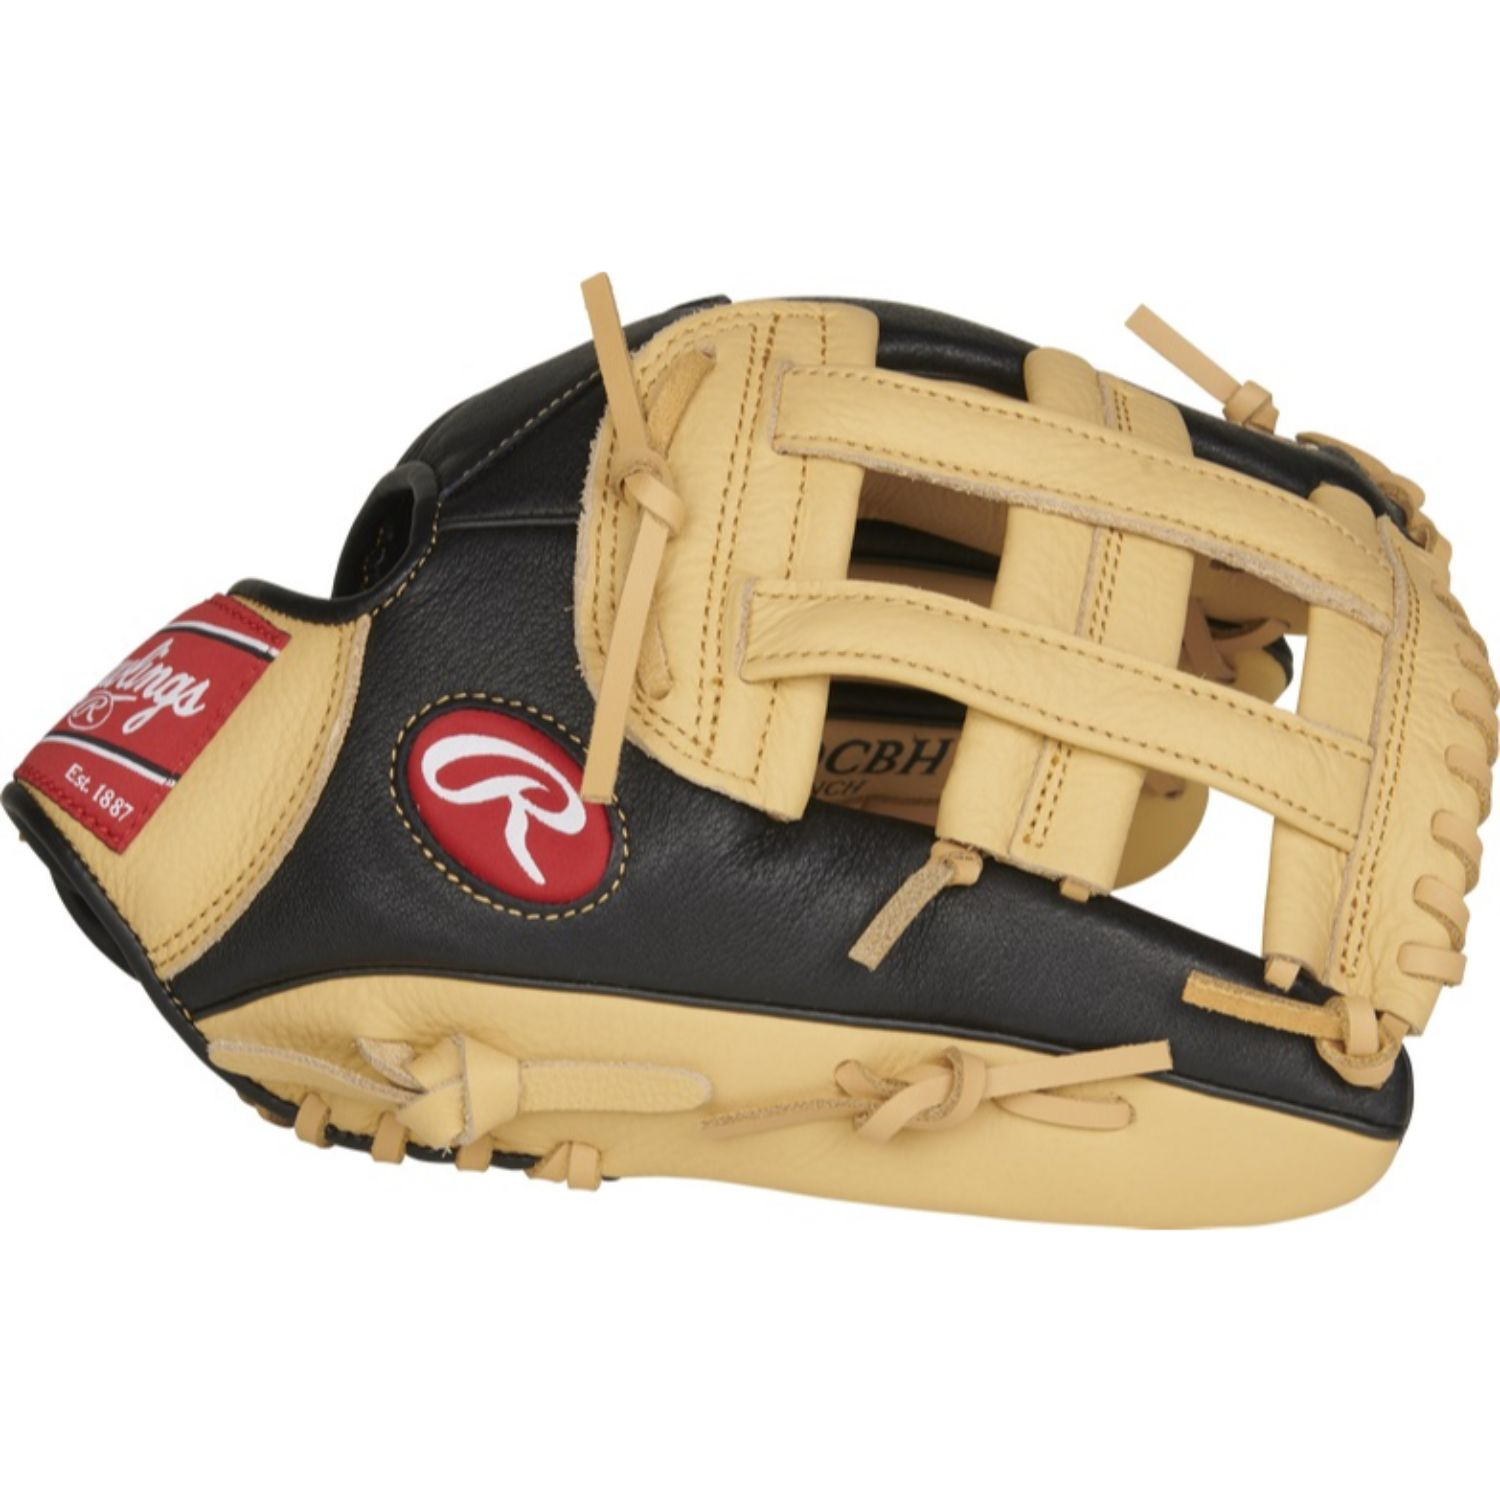 Rawlings 12 inch Prodigy Youth RH Outfield Glove